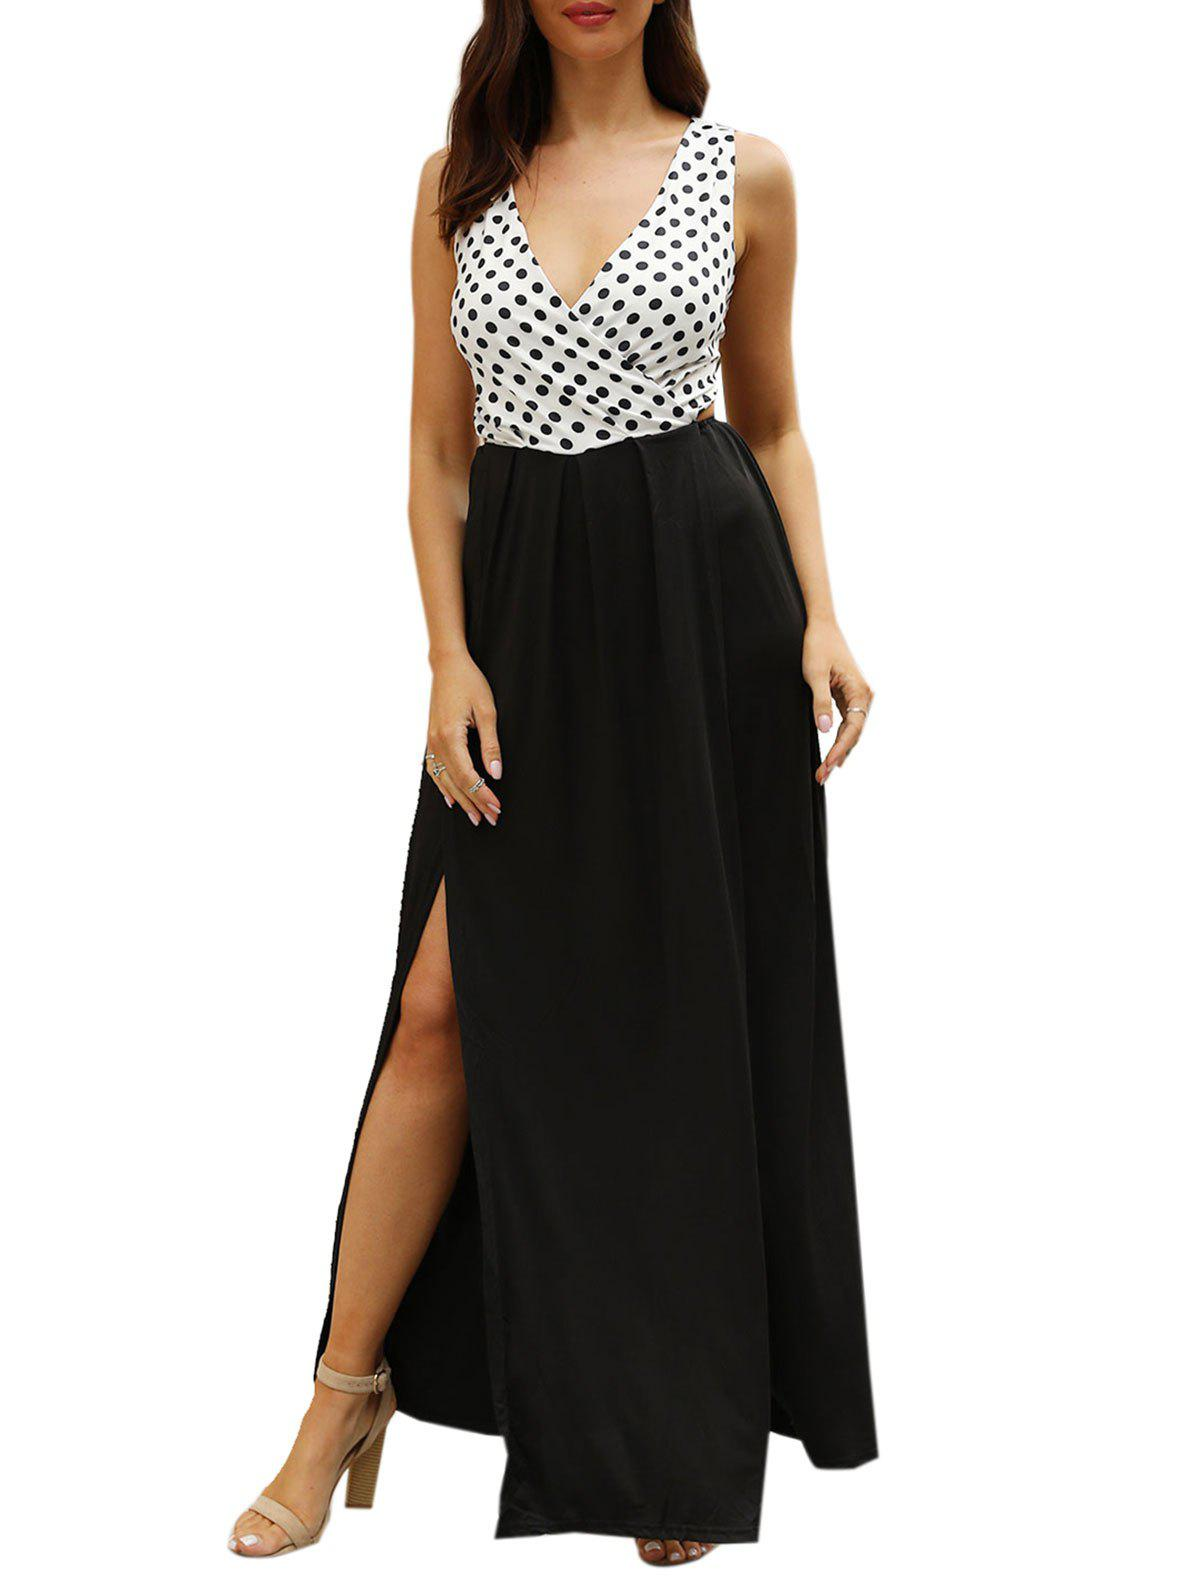 Polka Dot Print High Slit Cut Out Maxi Dress - BLACK XL